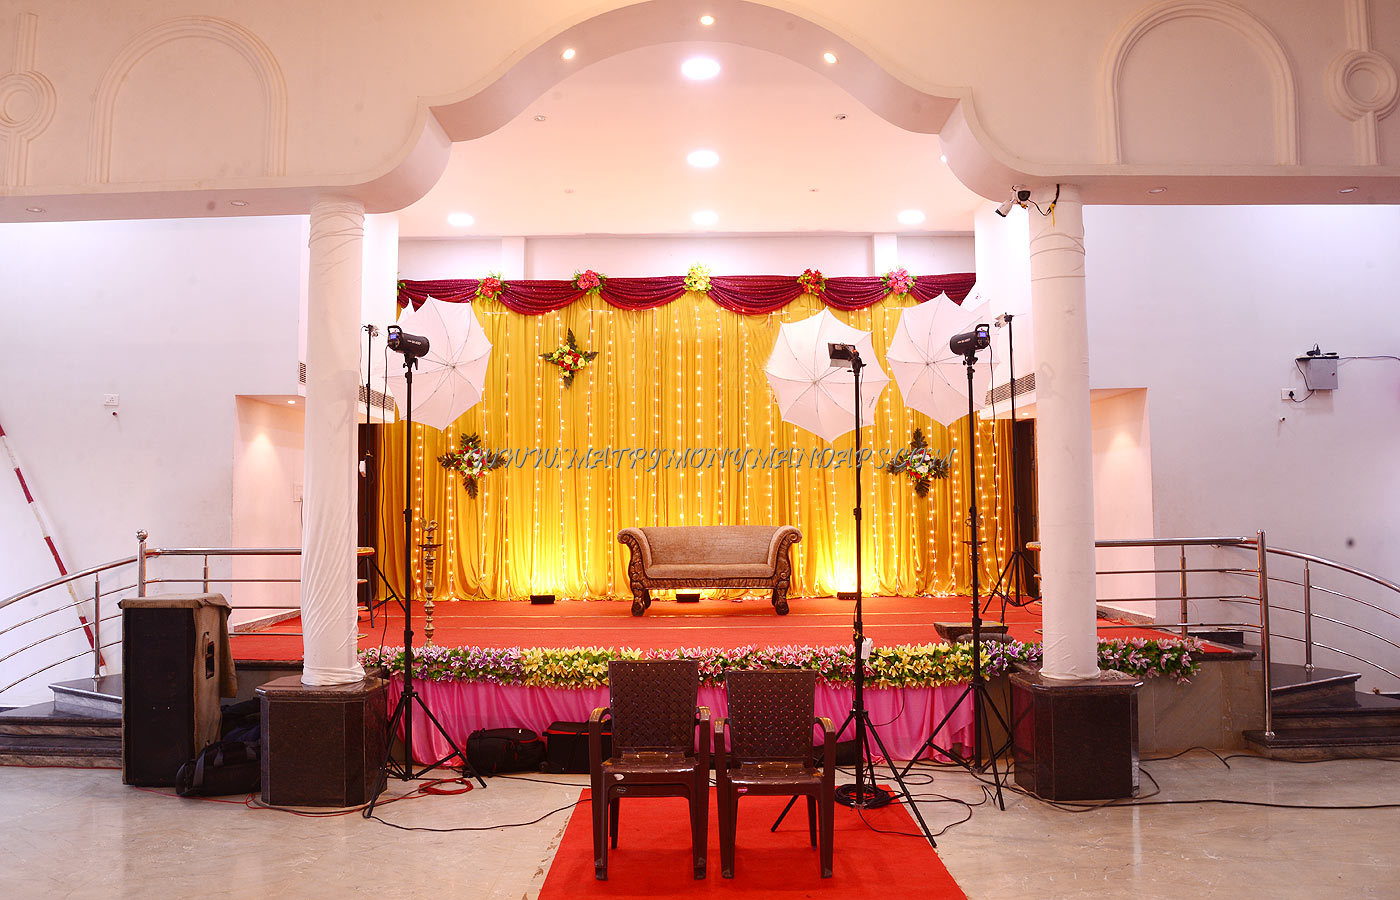 Find the availability of the Surya Mahal (A/C) in Thiruppalai, Madurai and avail special offers